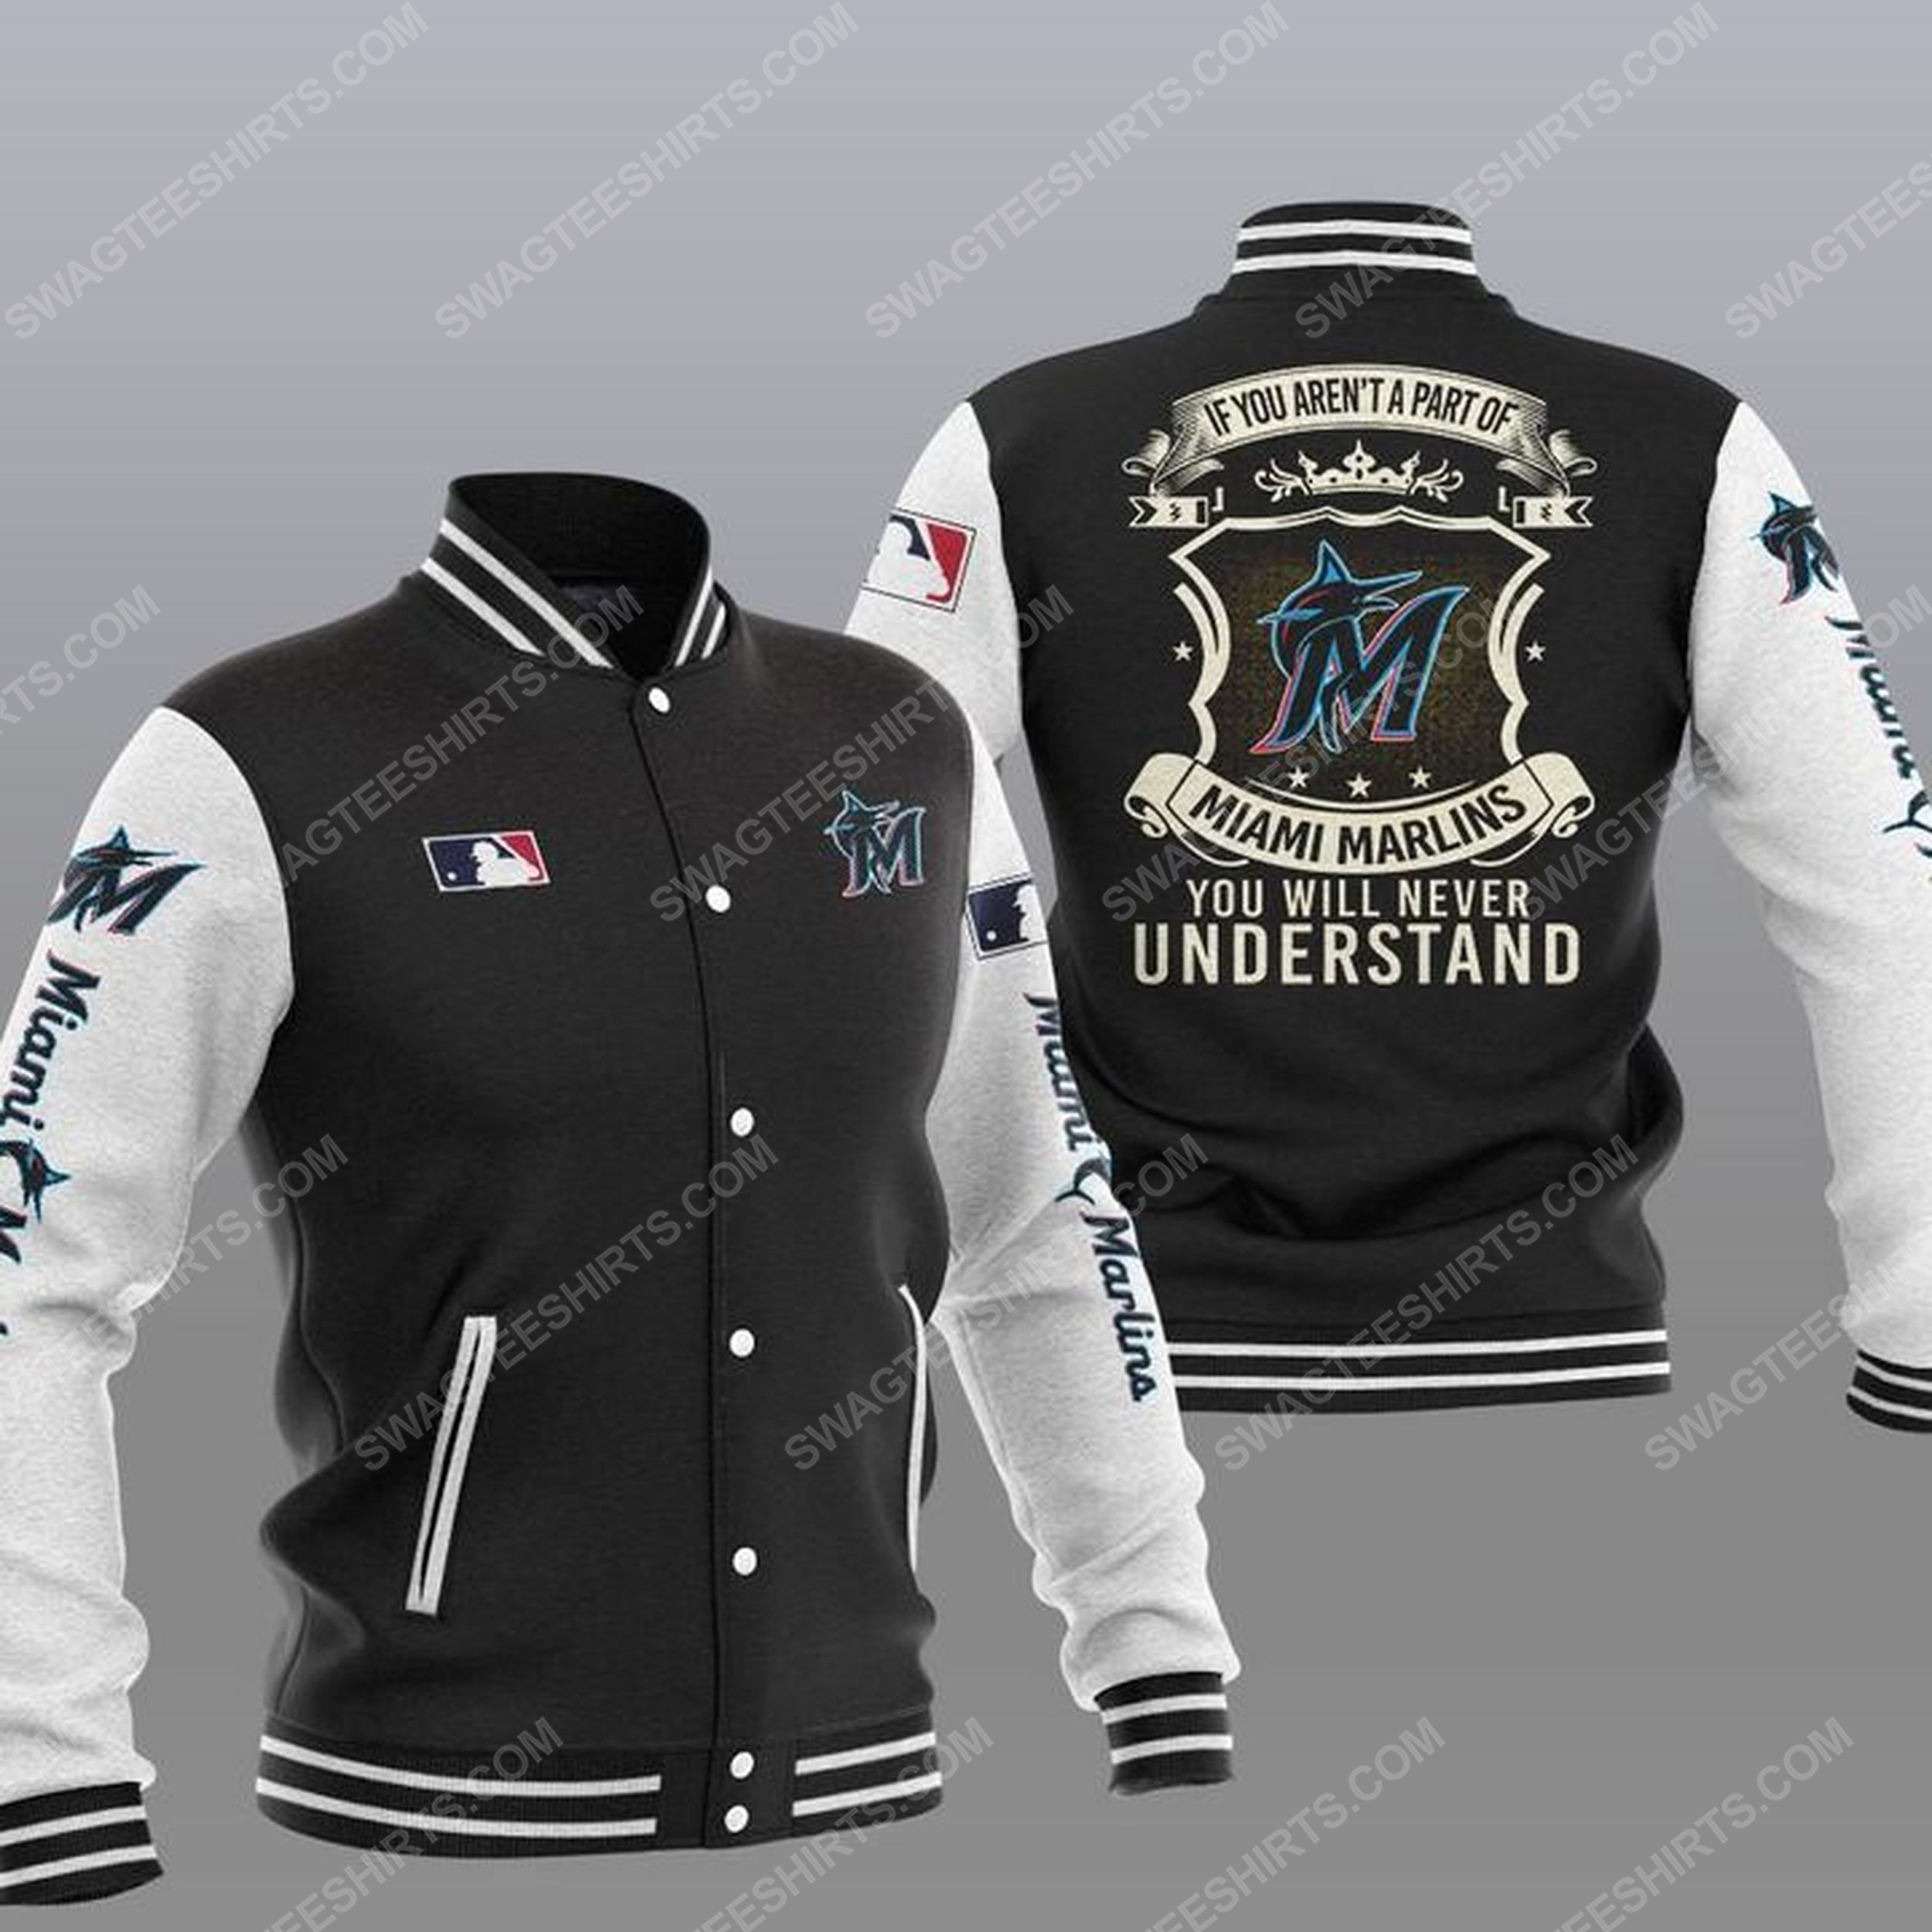 You will never understand miami marlins all over print jacket